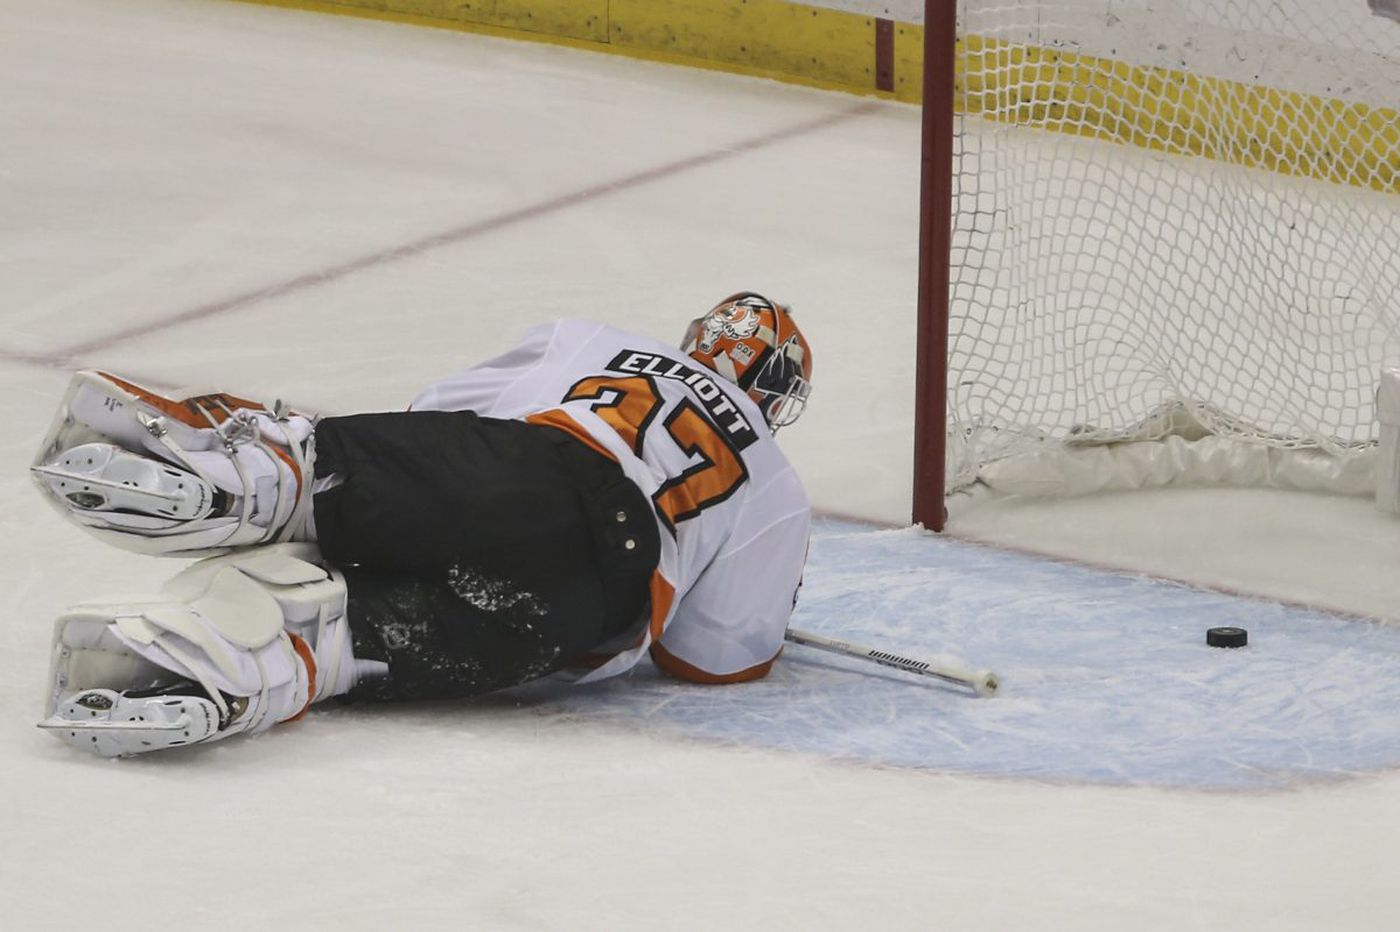 Observations from the Flyers' most embarrassing Game 1 playoff loss ever